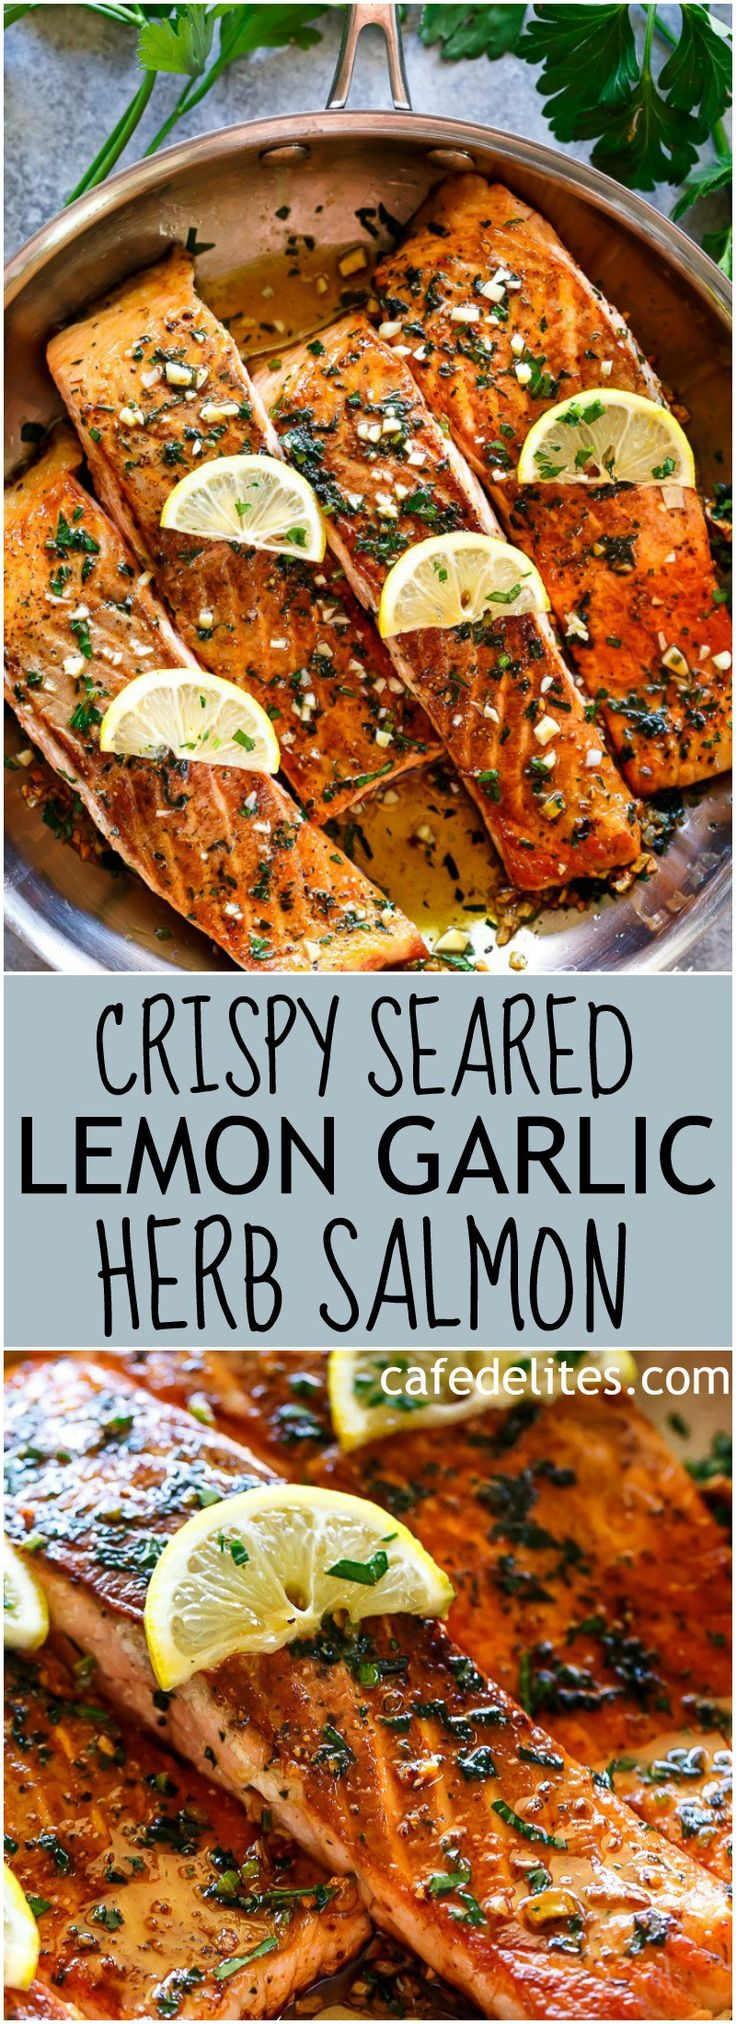 Crispy Seared Lemon Garlic Herb Salmon is a deliciously easy salmon recipe, so simple to make, yet so delicious! Crispy on the outside, soft and tender on the inside! | https://cafedelites.com